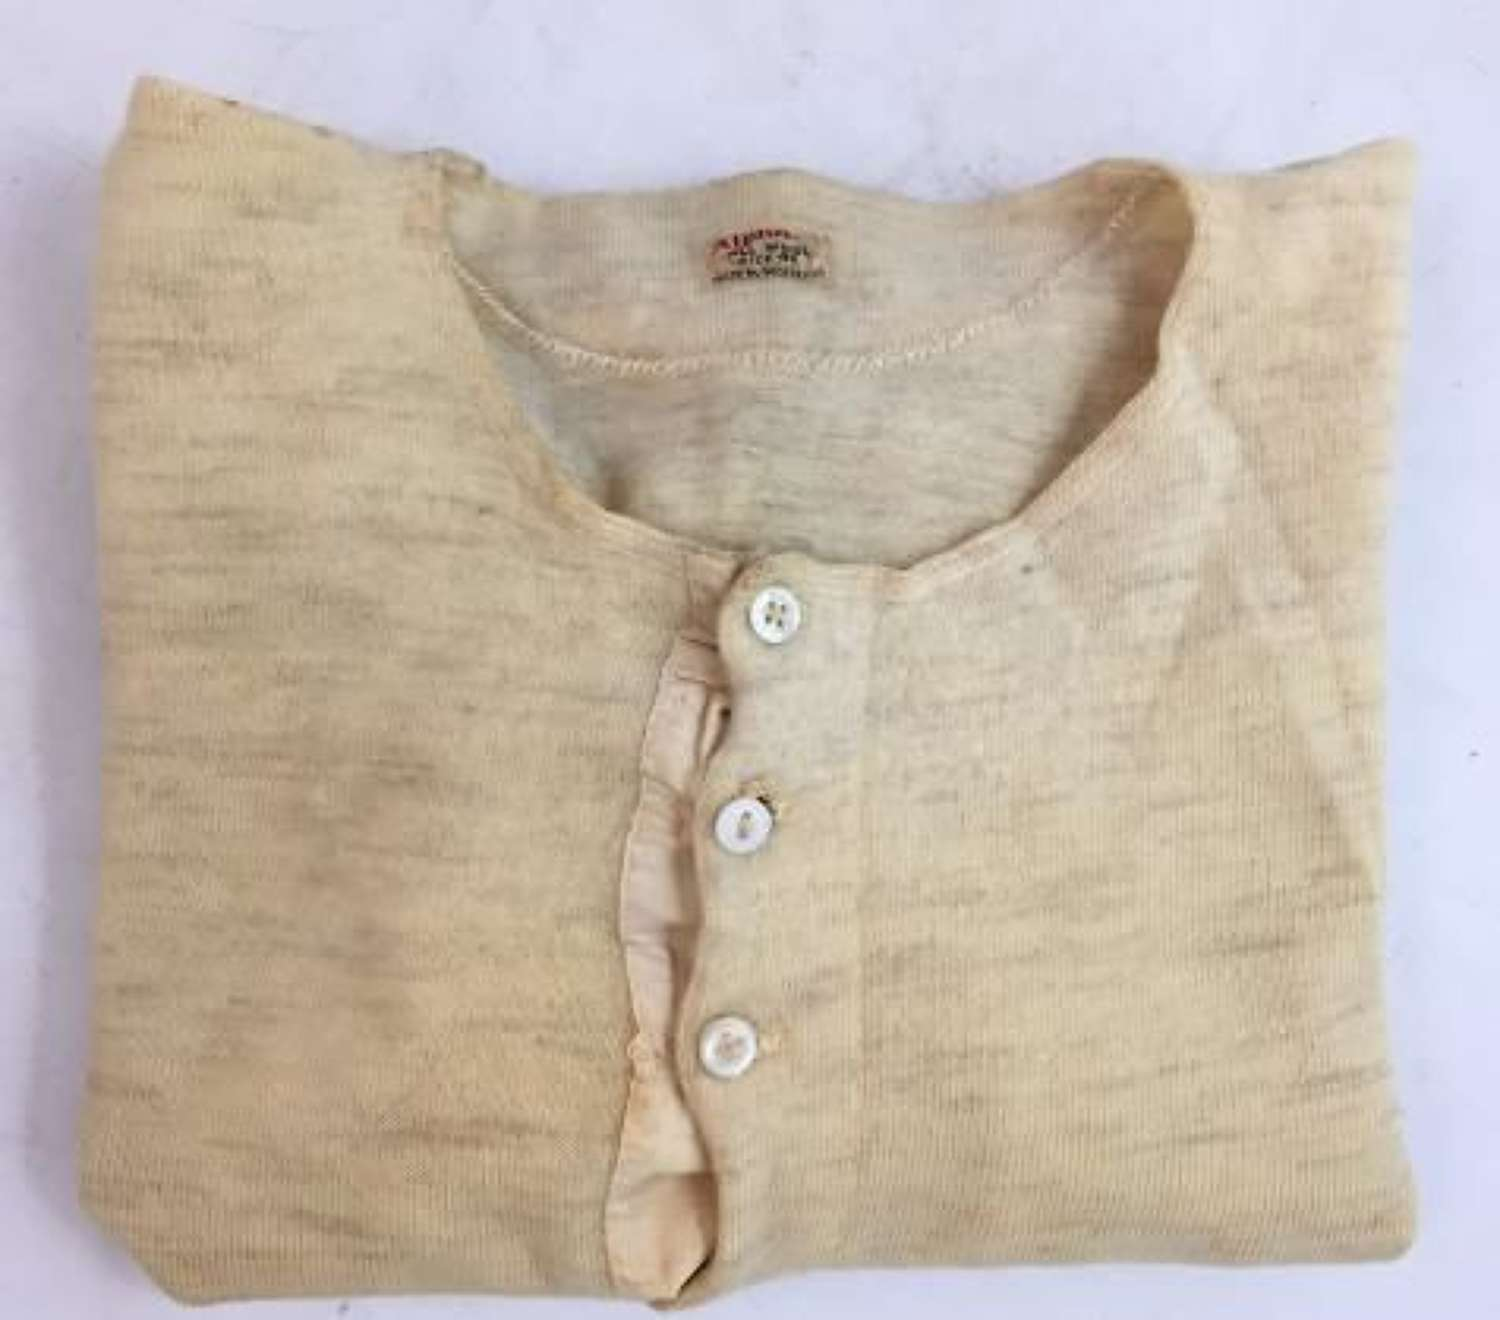 Original 1940s Men's Undershirt by 'Alpha' - Size 40 (2)